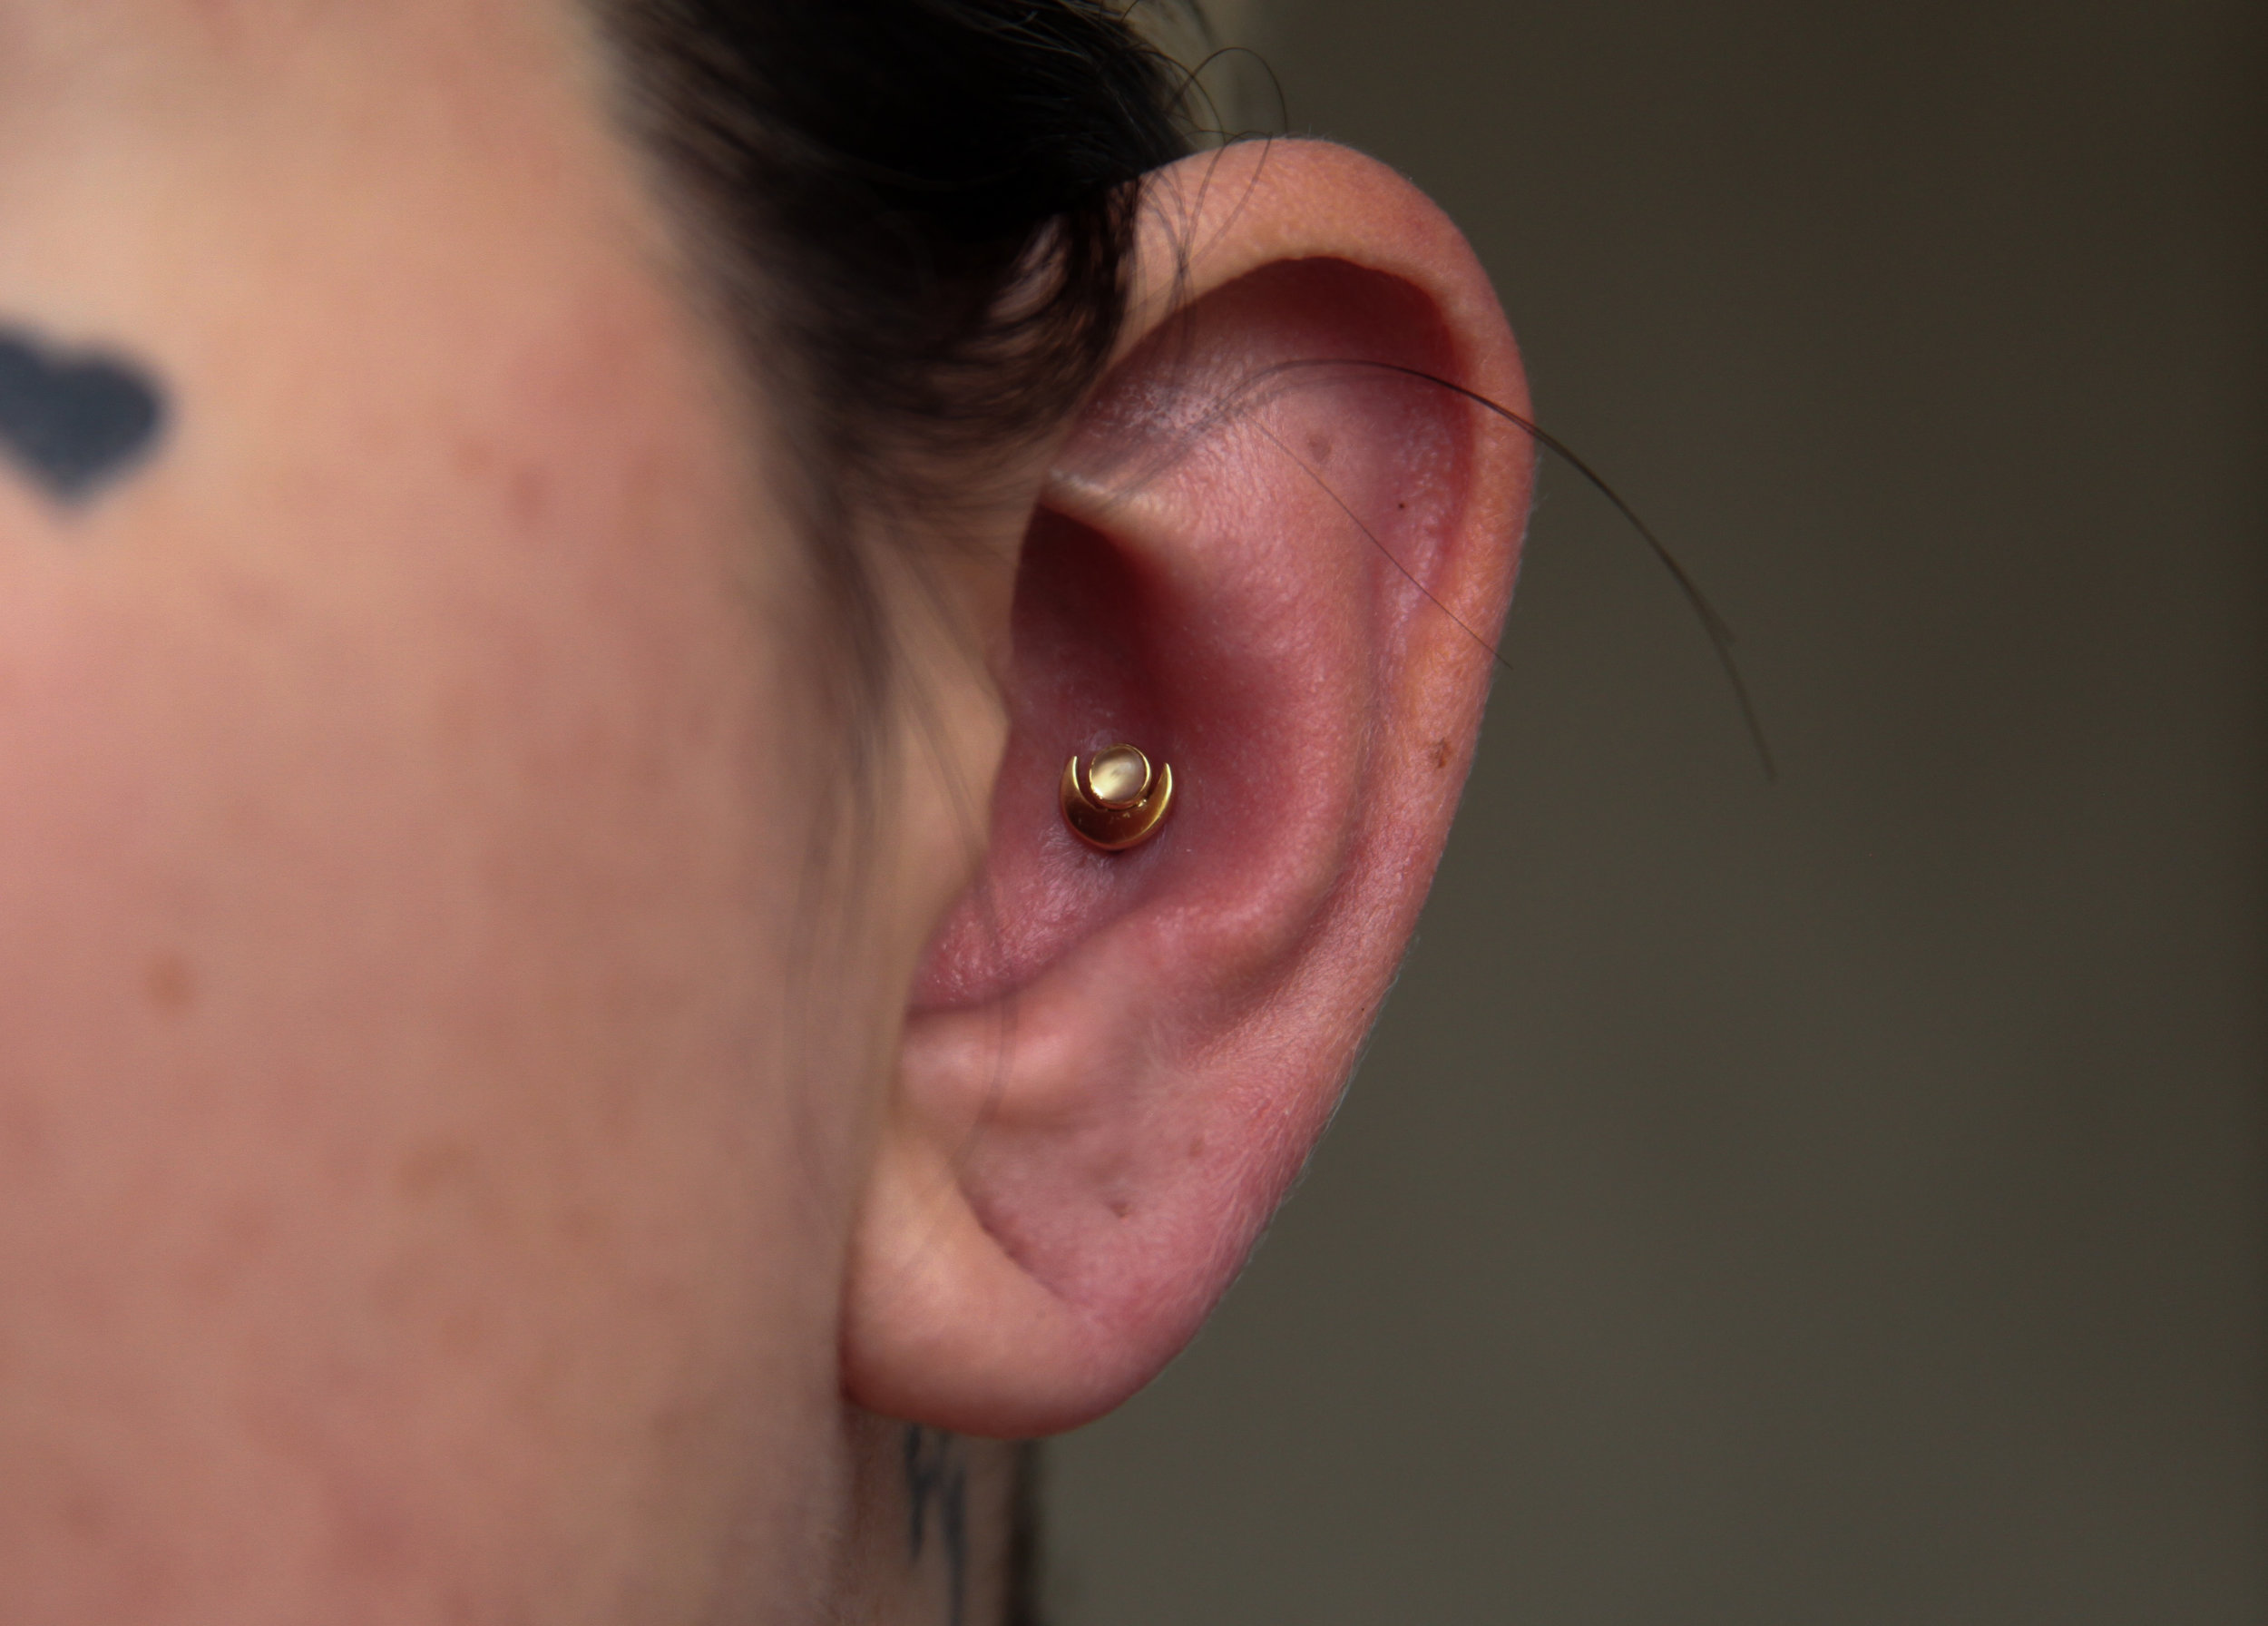 Conch Piercing - Conch piercings are located in the bowl-shaped portion of the ear adjacent to the ear canal. This placement gives the piercee a ton of options for jewelry, given the sheer amount of workable space.Conch piercings have a 6 to 9 month healing time.